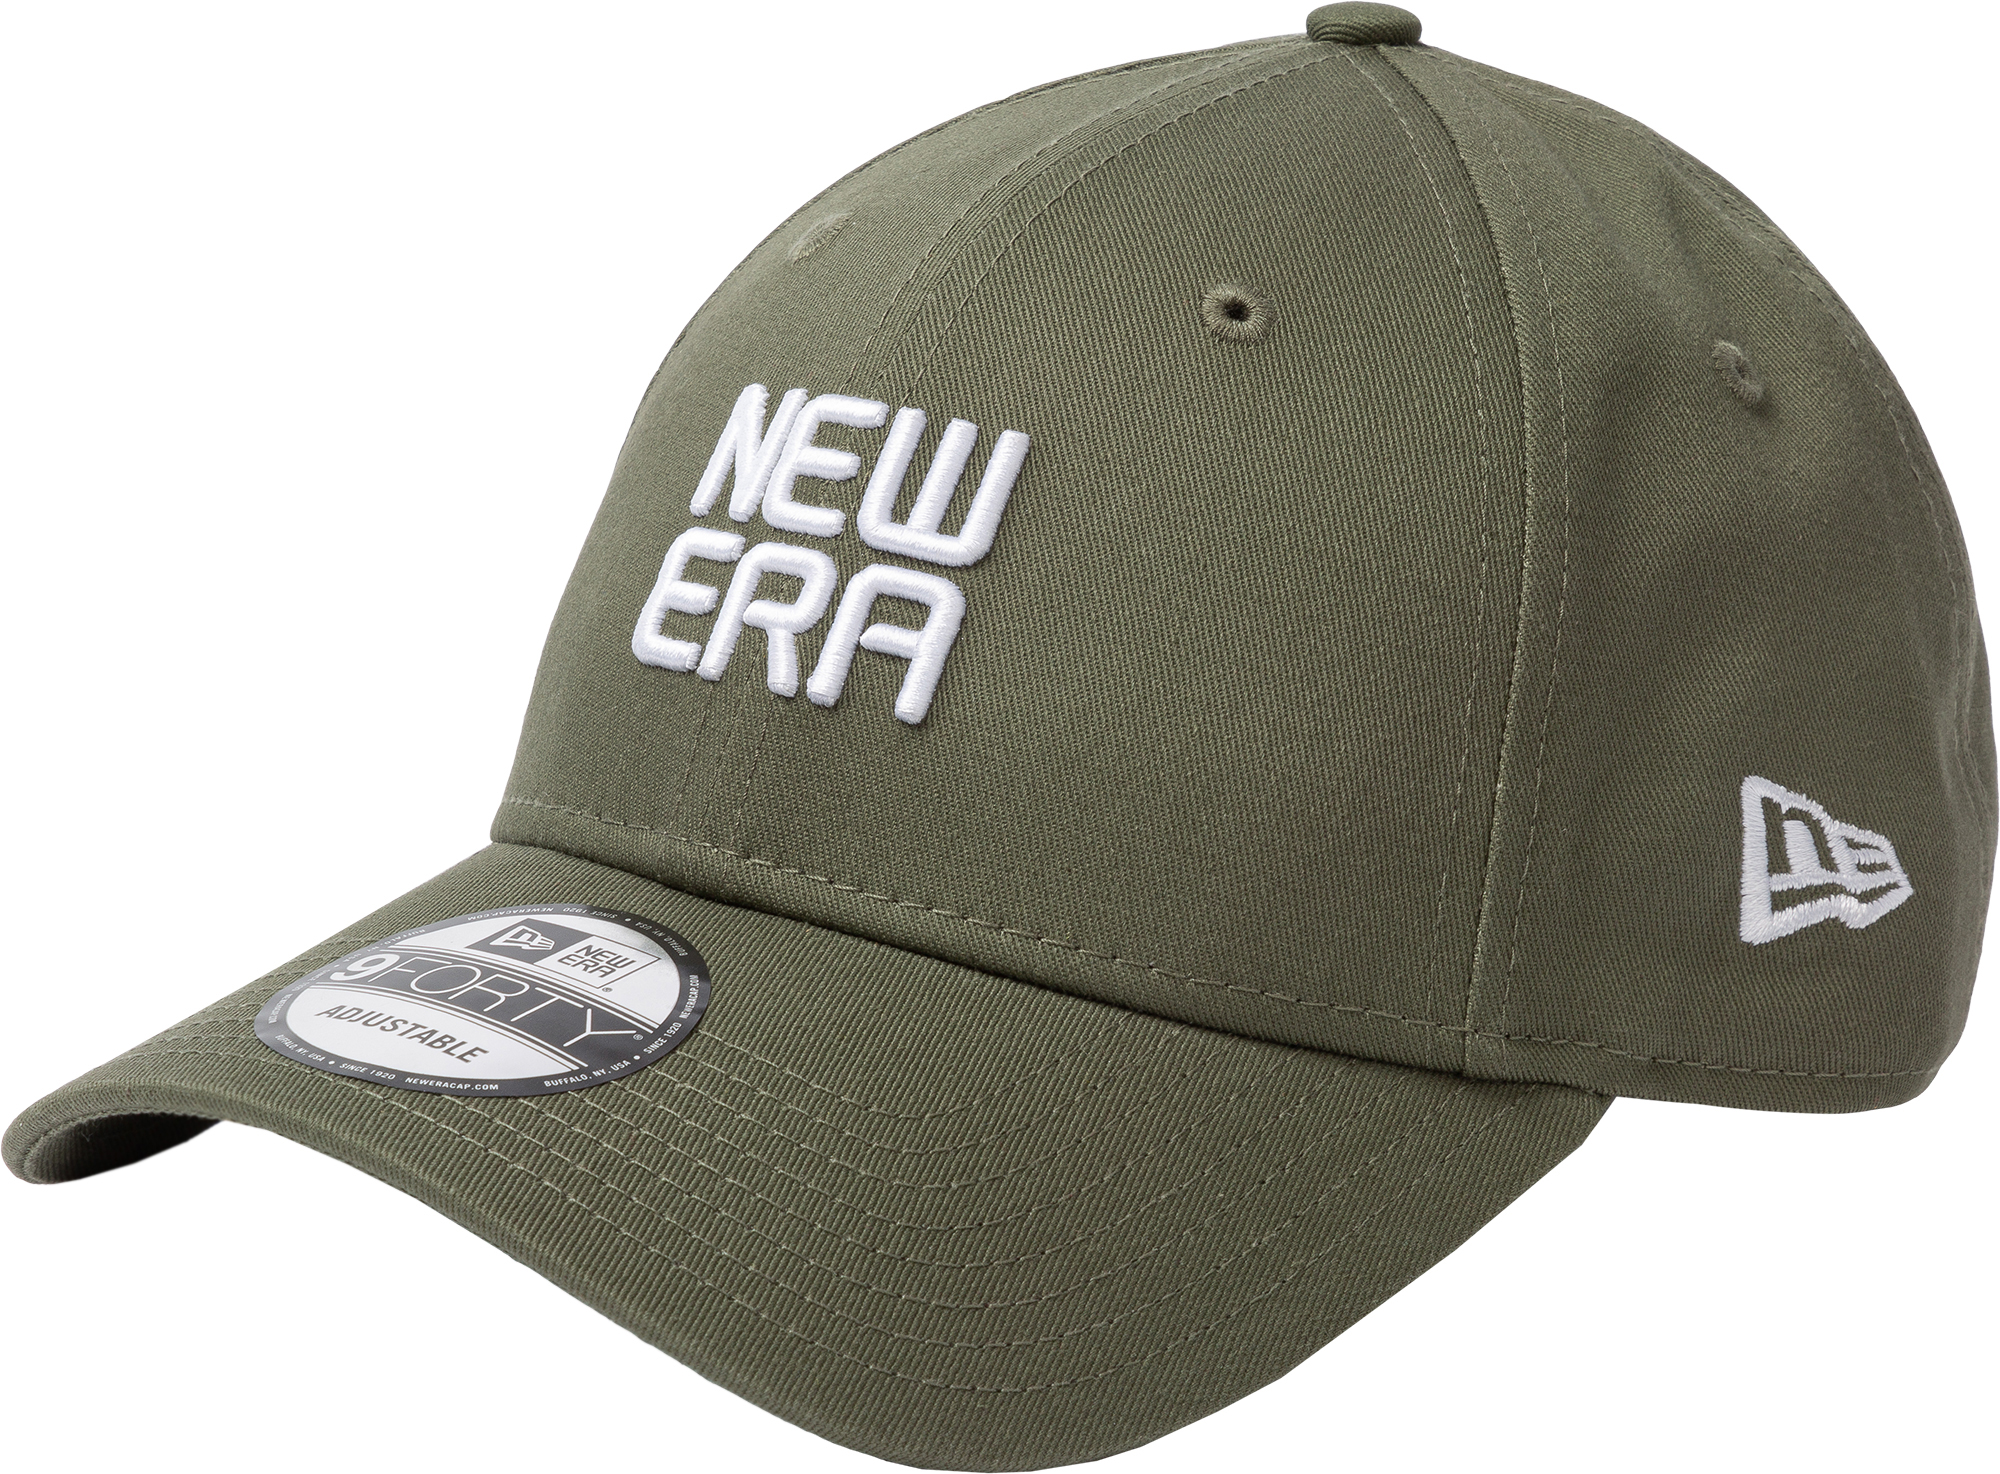 New Era Бейсболка New Era 9Forty цена